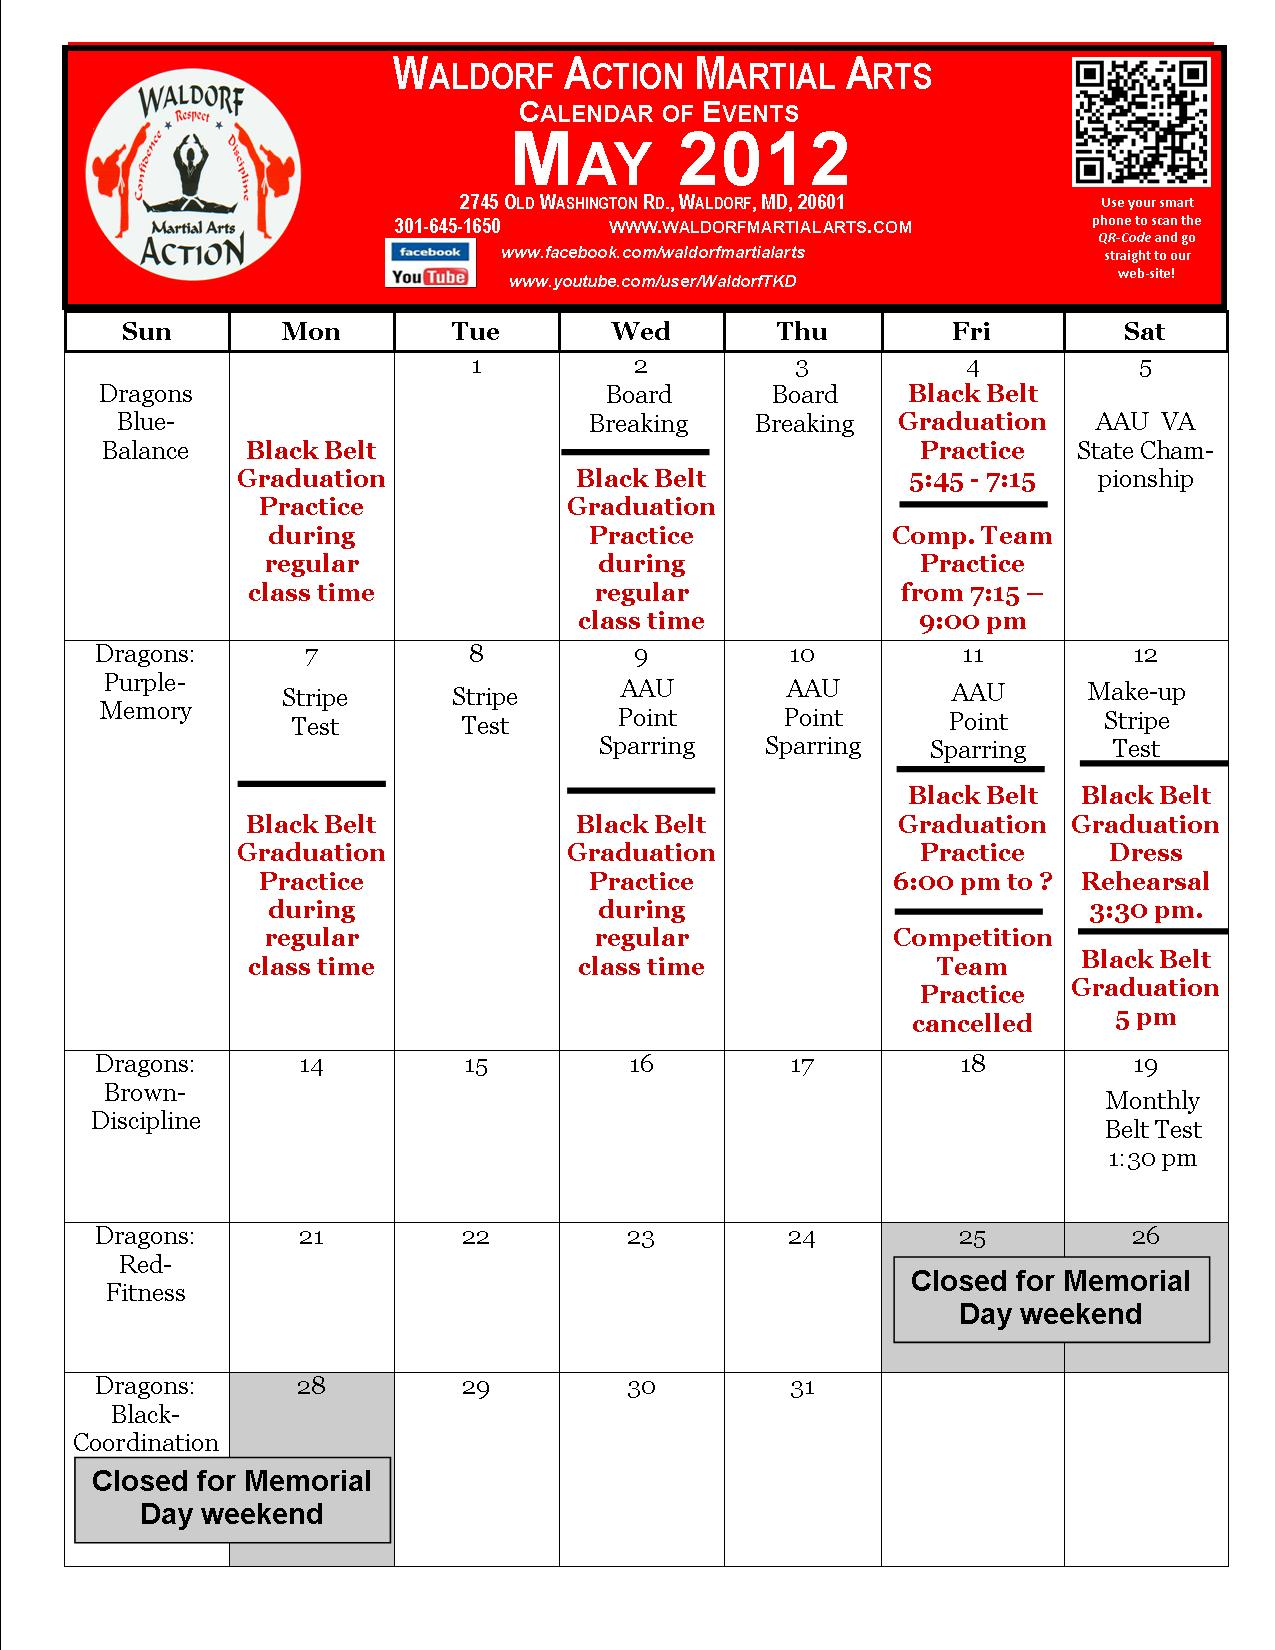 May Calendar Of Events : Calendar events waldorf martial arts part